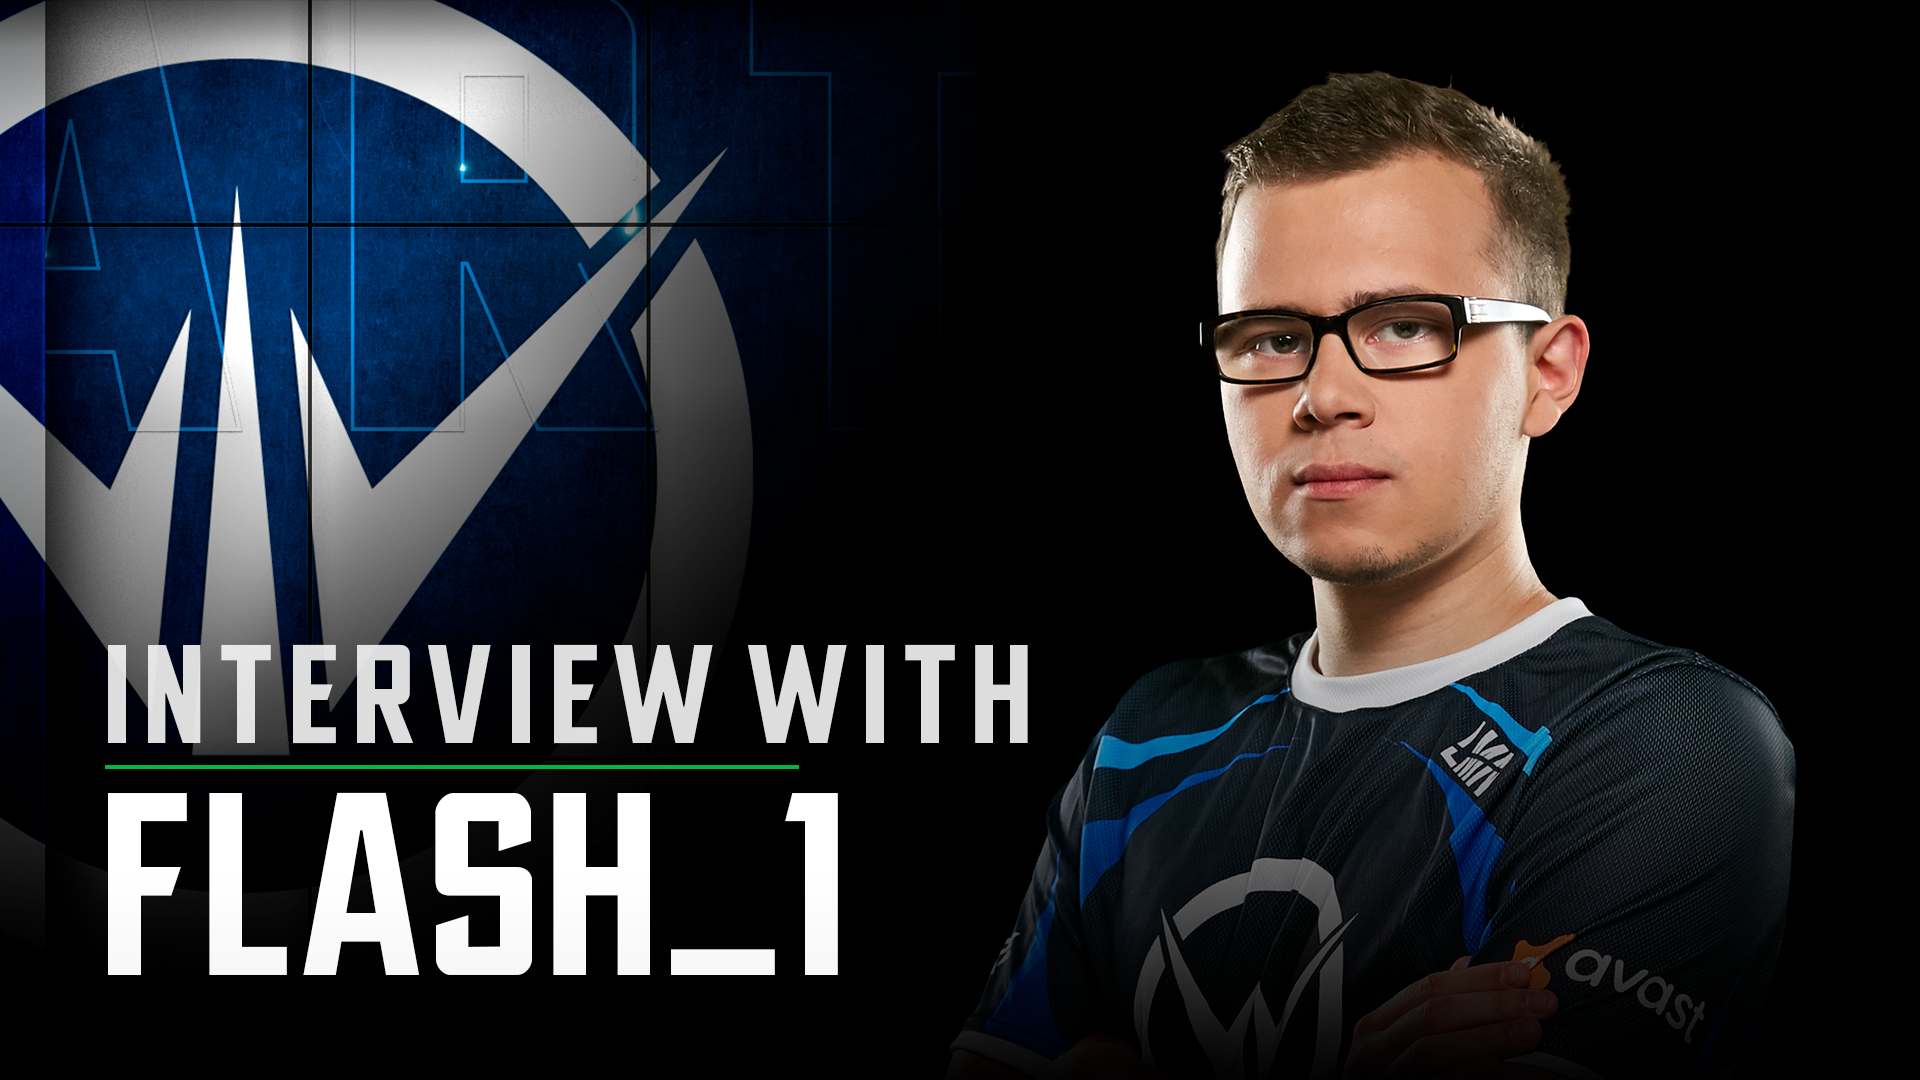 #BerlinMinor2019 | Interview with Flash_1 from Warthox Esport